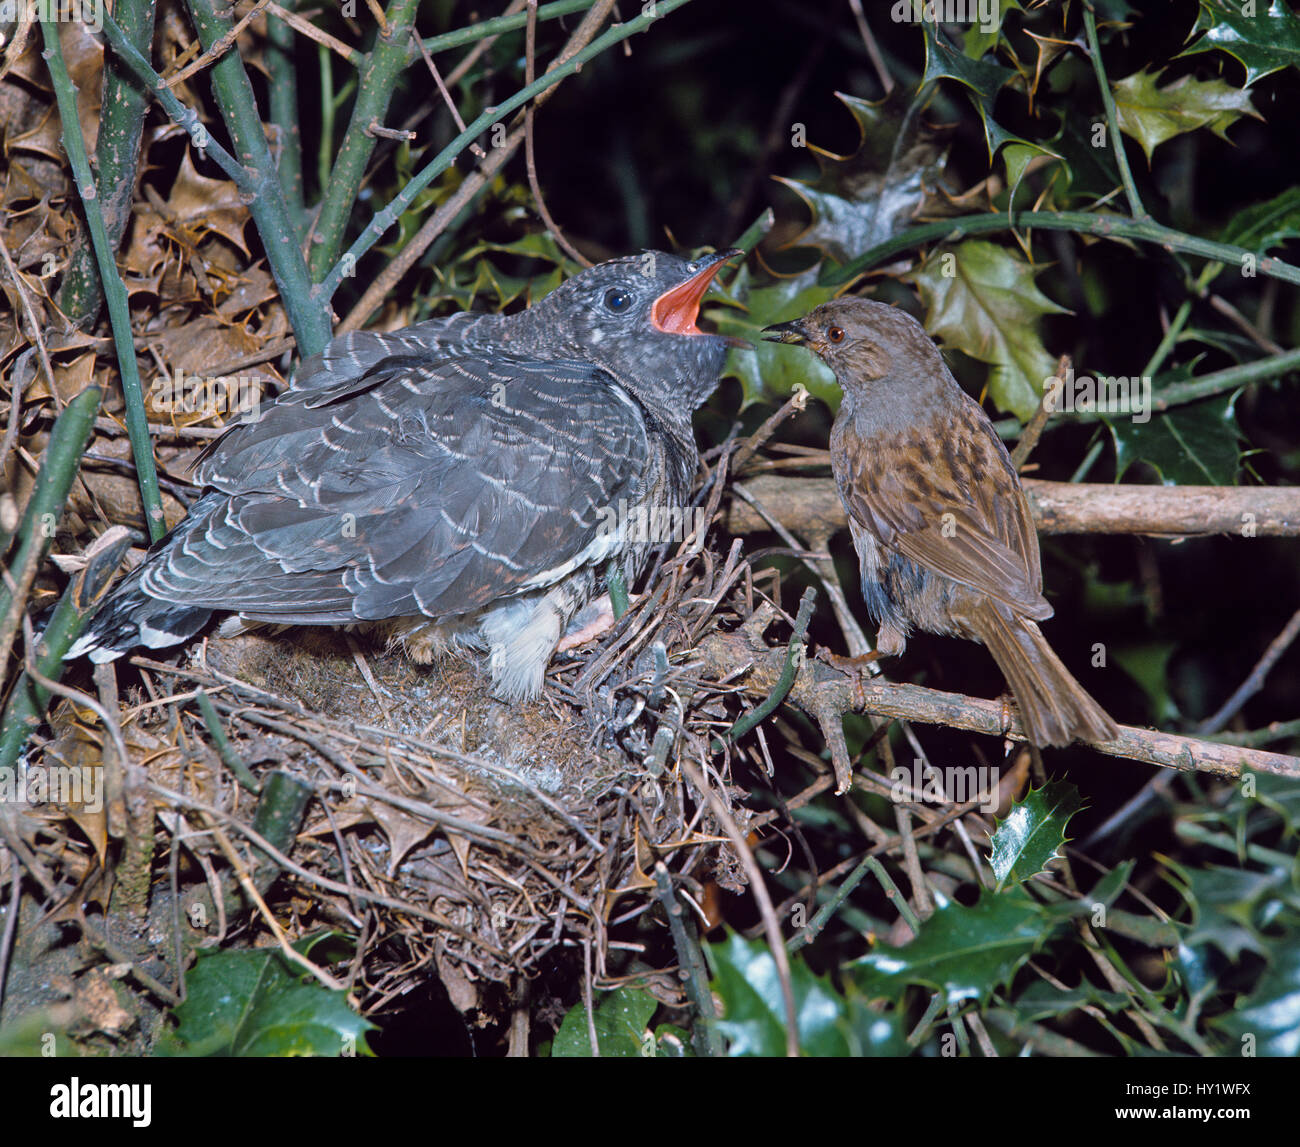 Dunnock (Prunella modularis) feeding young cuckoo in nest - Stock Image